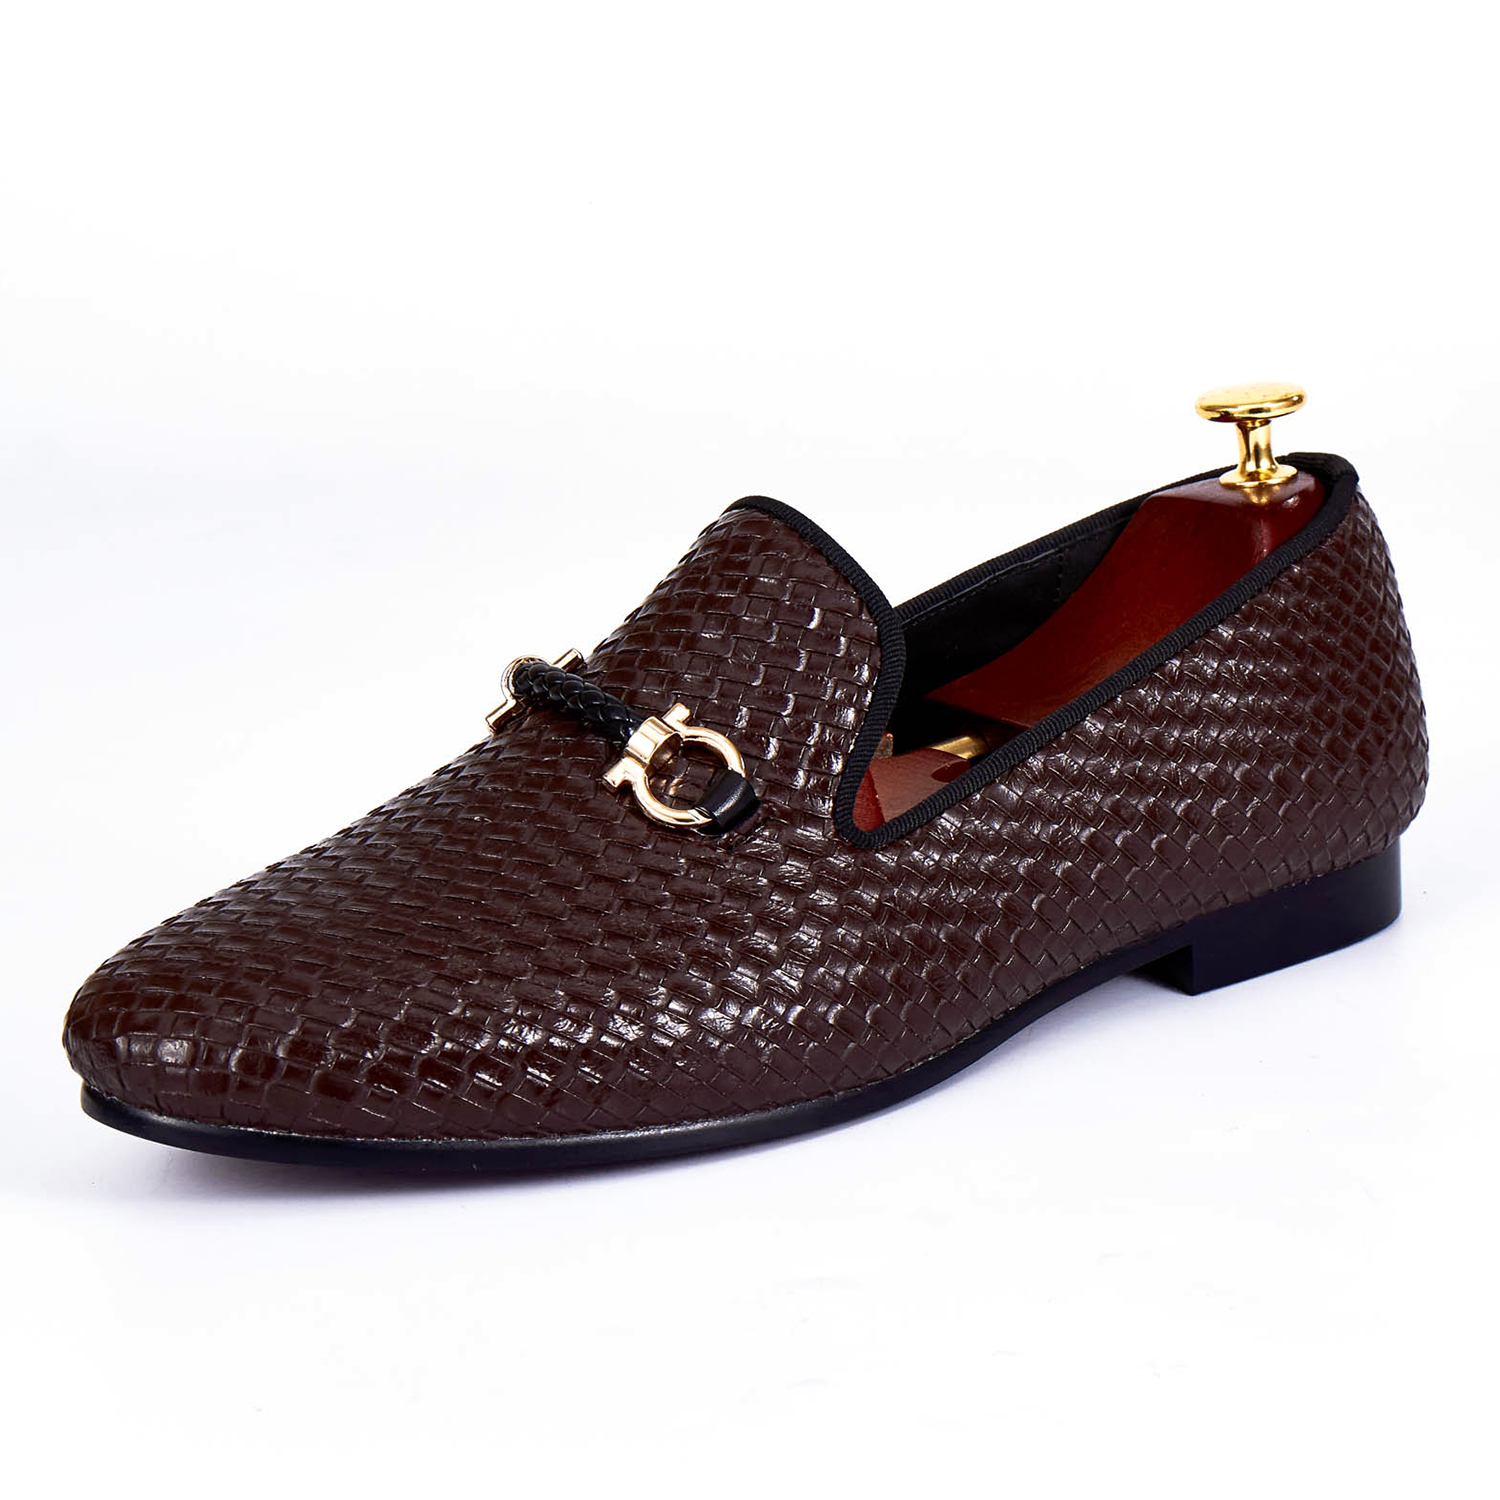 Harpelunde Woven Leather Men Wedding Shoes Brown Flats Shoes Size 7-14